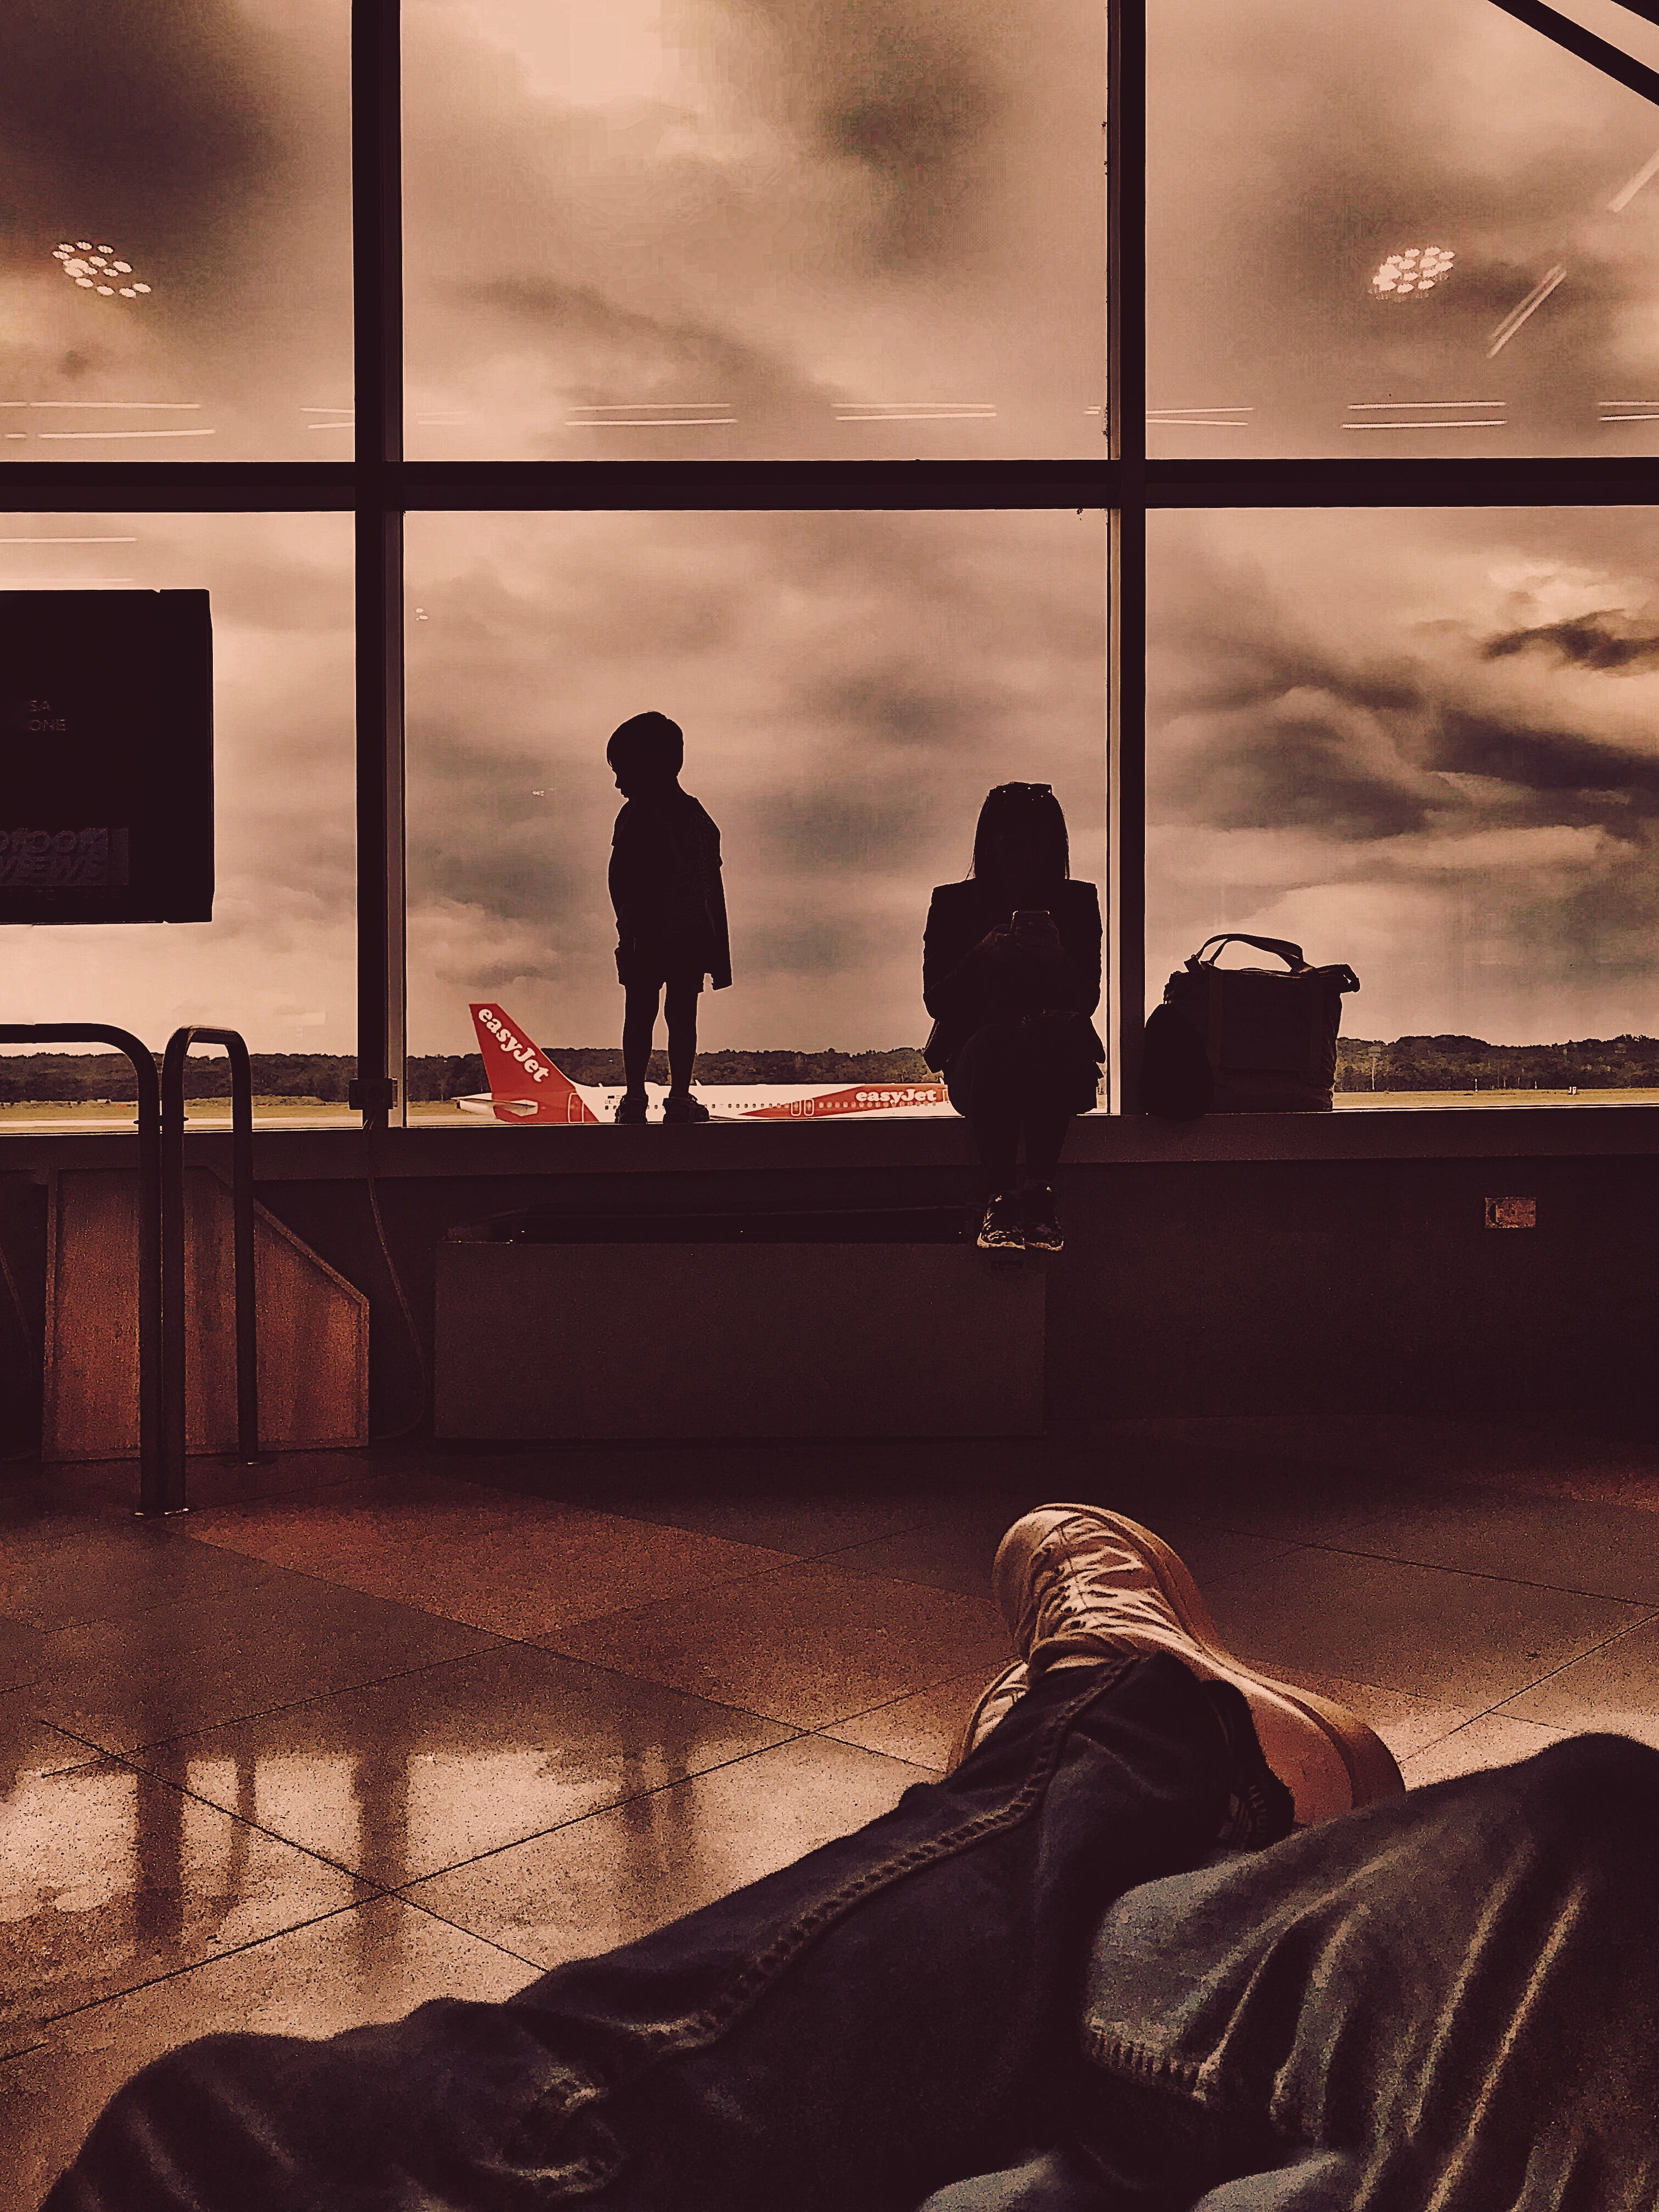 Silhouette of Person and Toddler Sitting on Brown Wooden Table Near Glass Wall